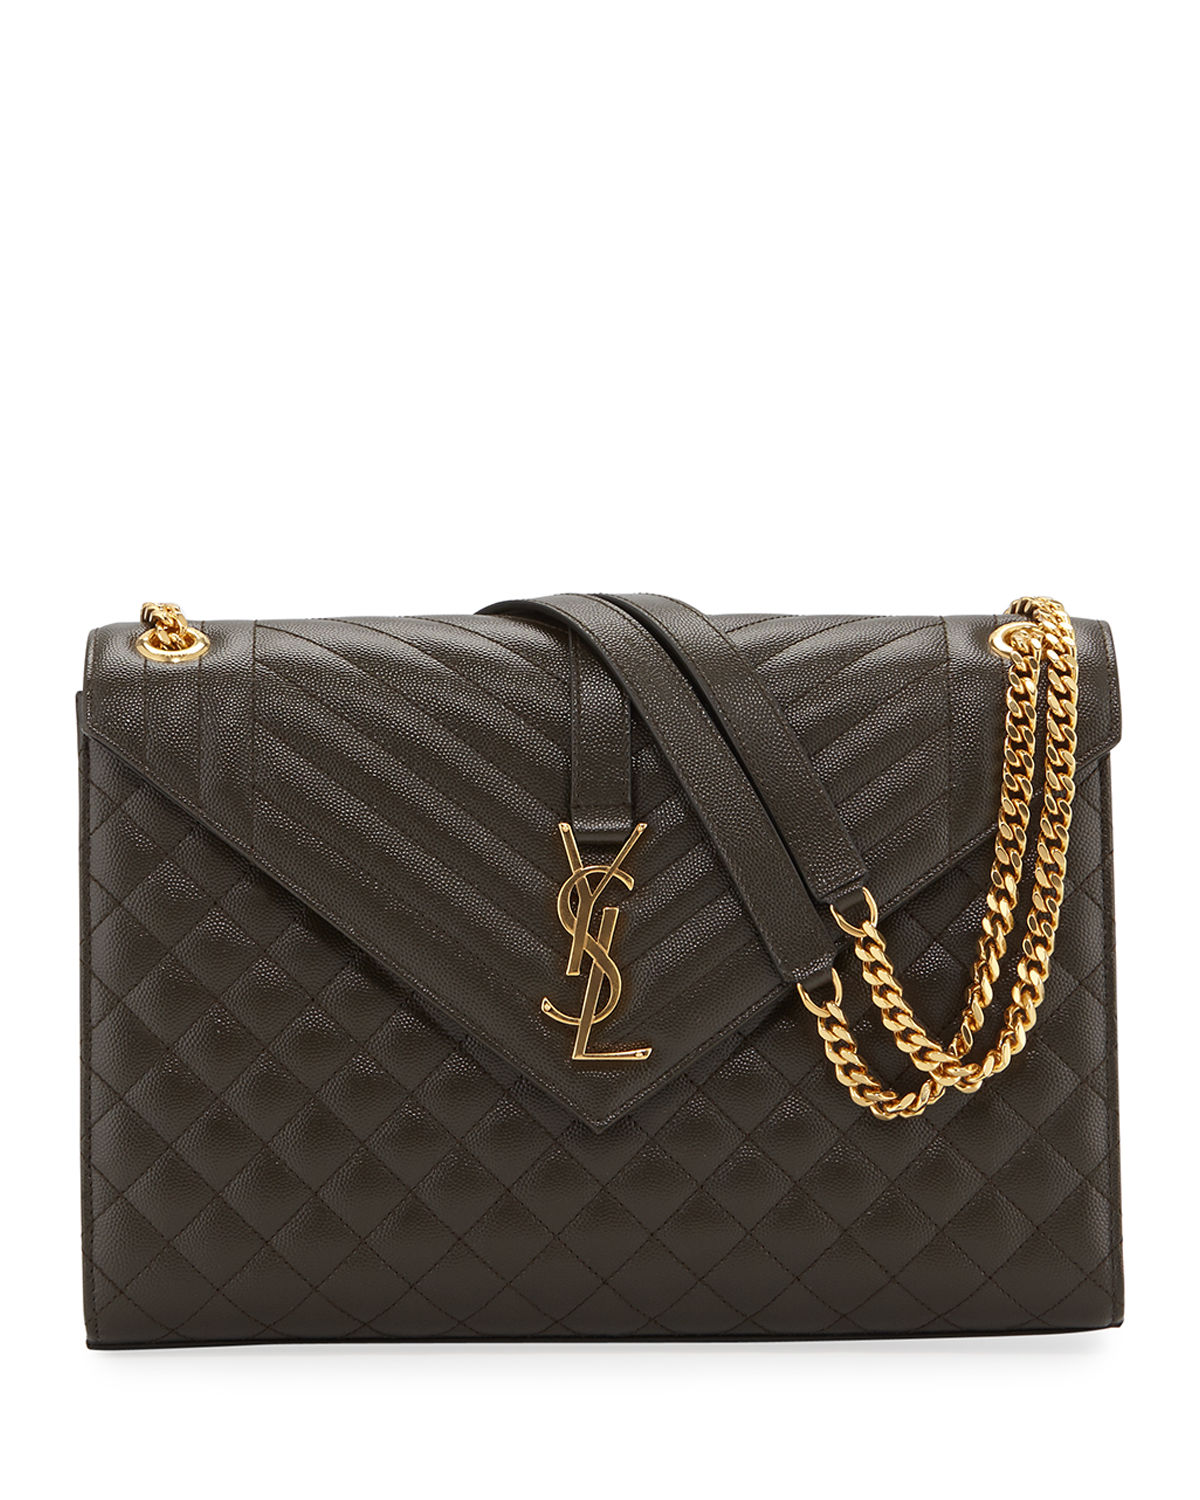 ef95542bb370 Saint LaurentMonogram YSL V-Flap Large Tri-Quilt Envelope Chain Shoulder Bag  - Golden Hardware